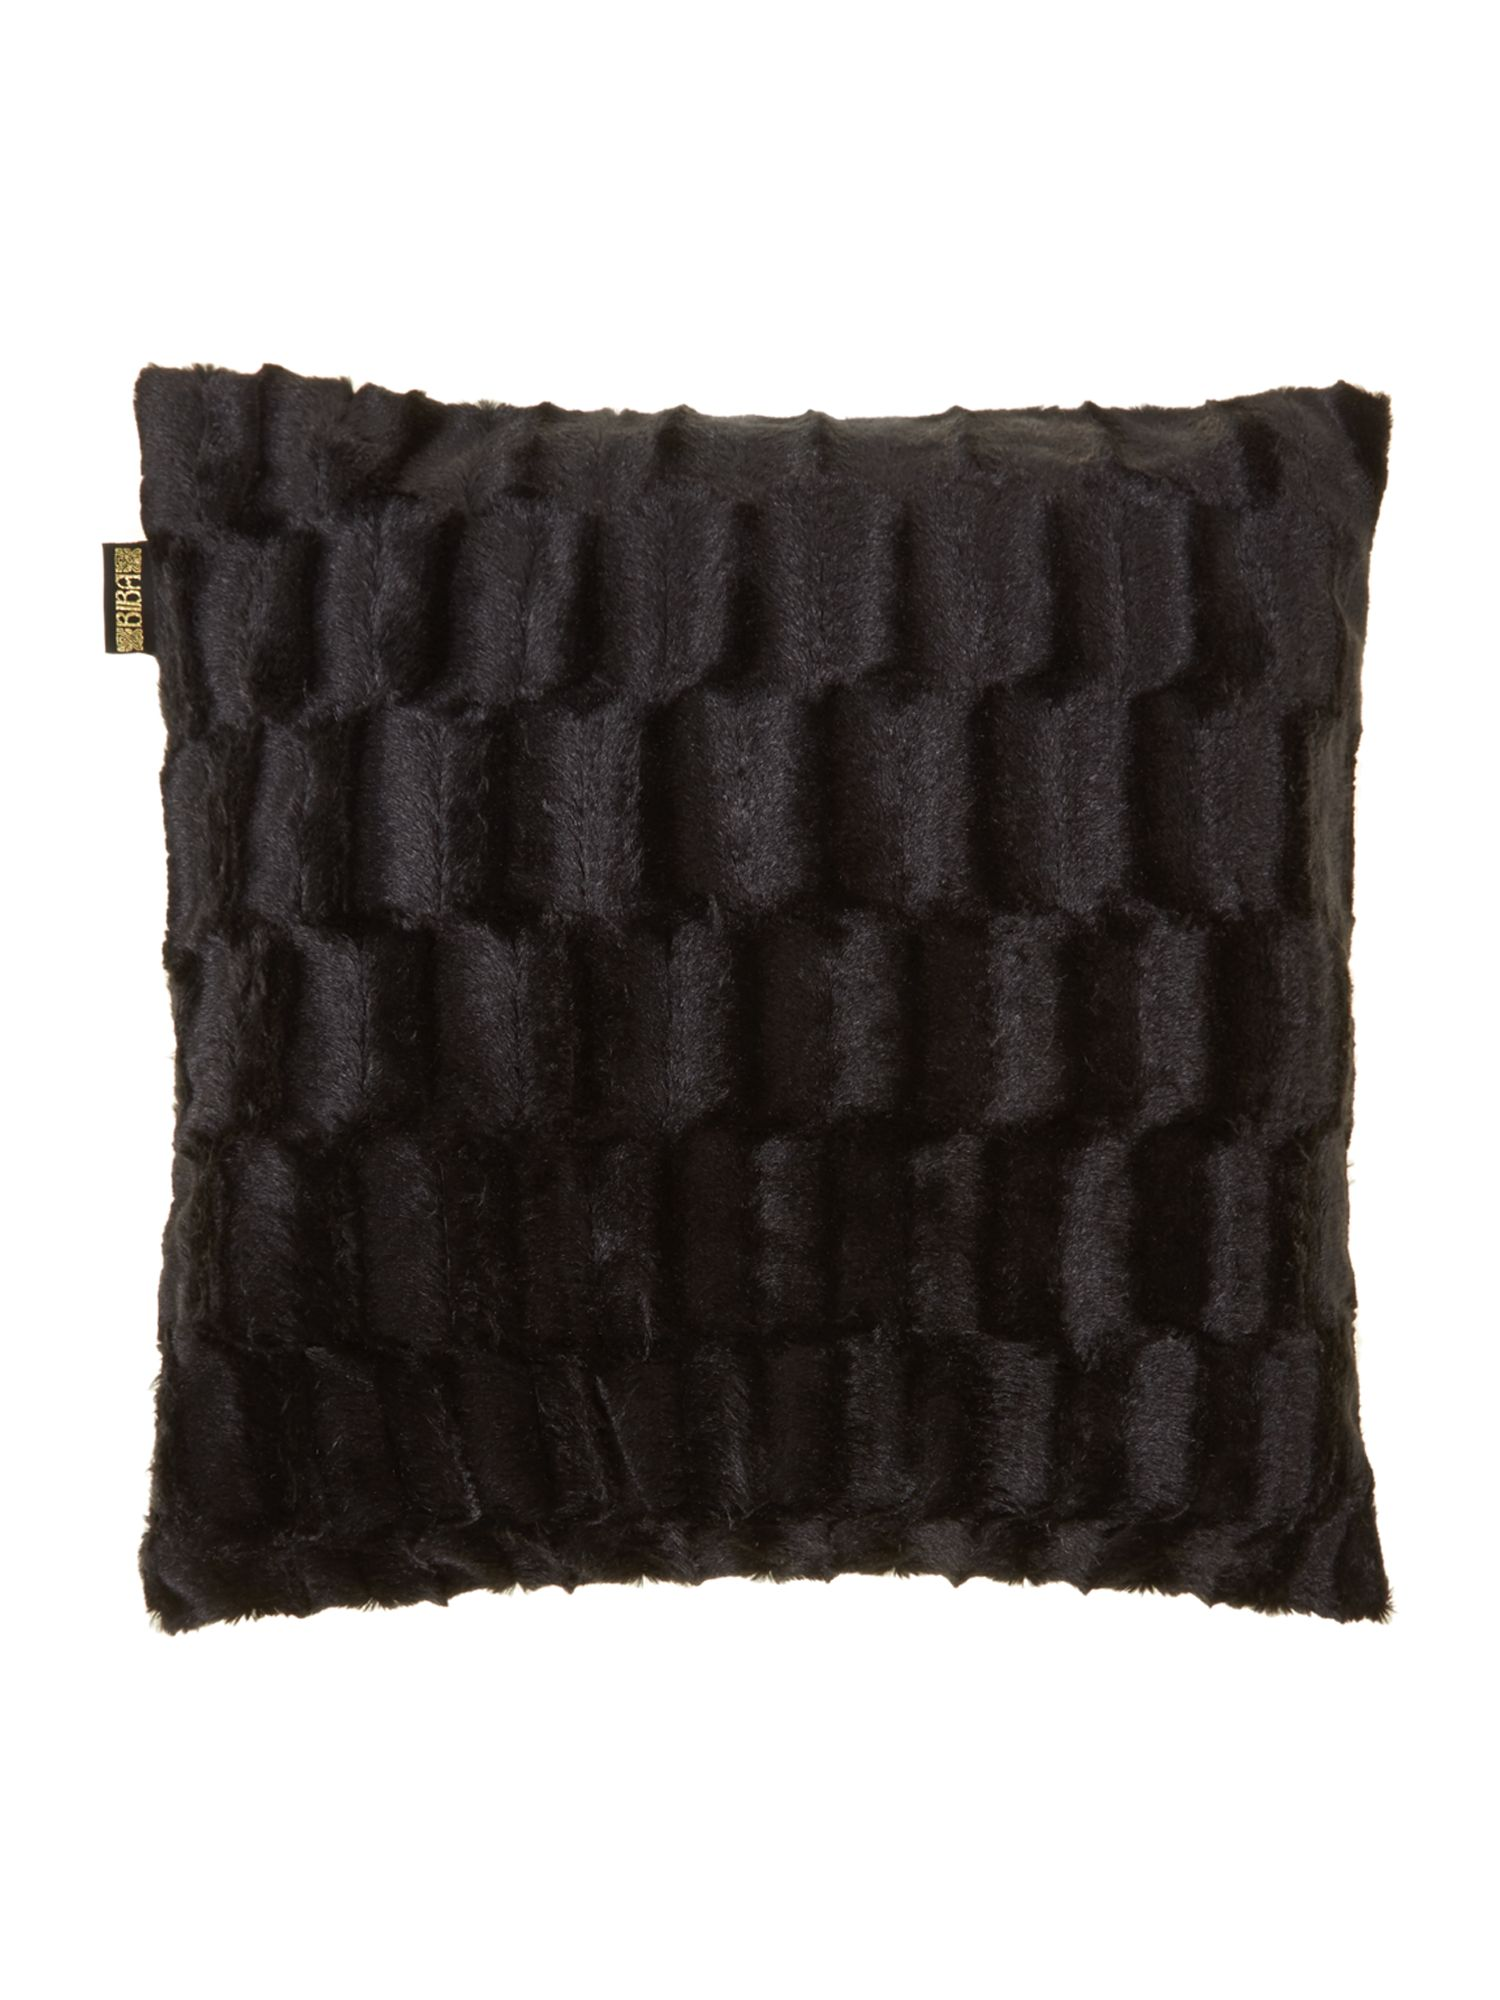 Black mink cushion